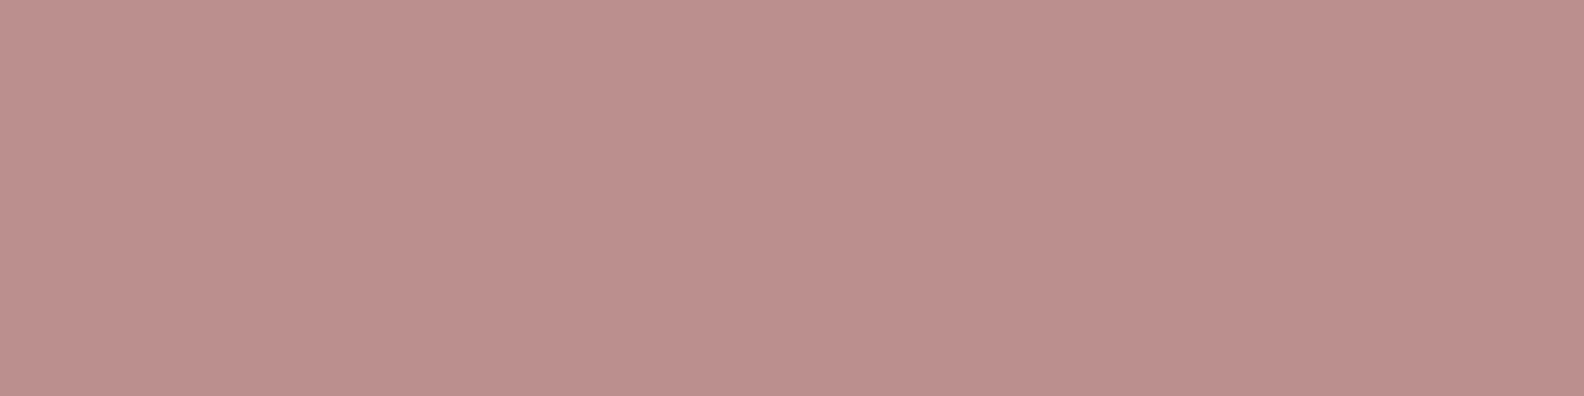 1584x396 Rosy Brown Solid Color Background